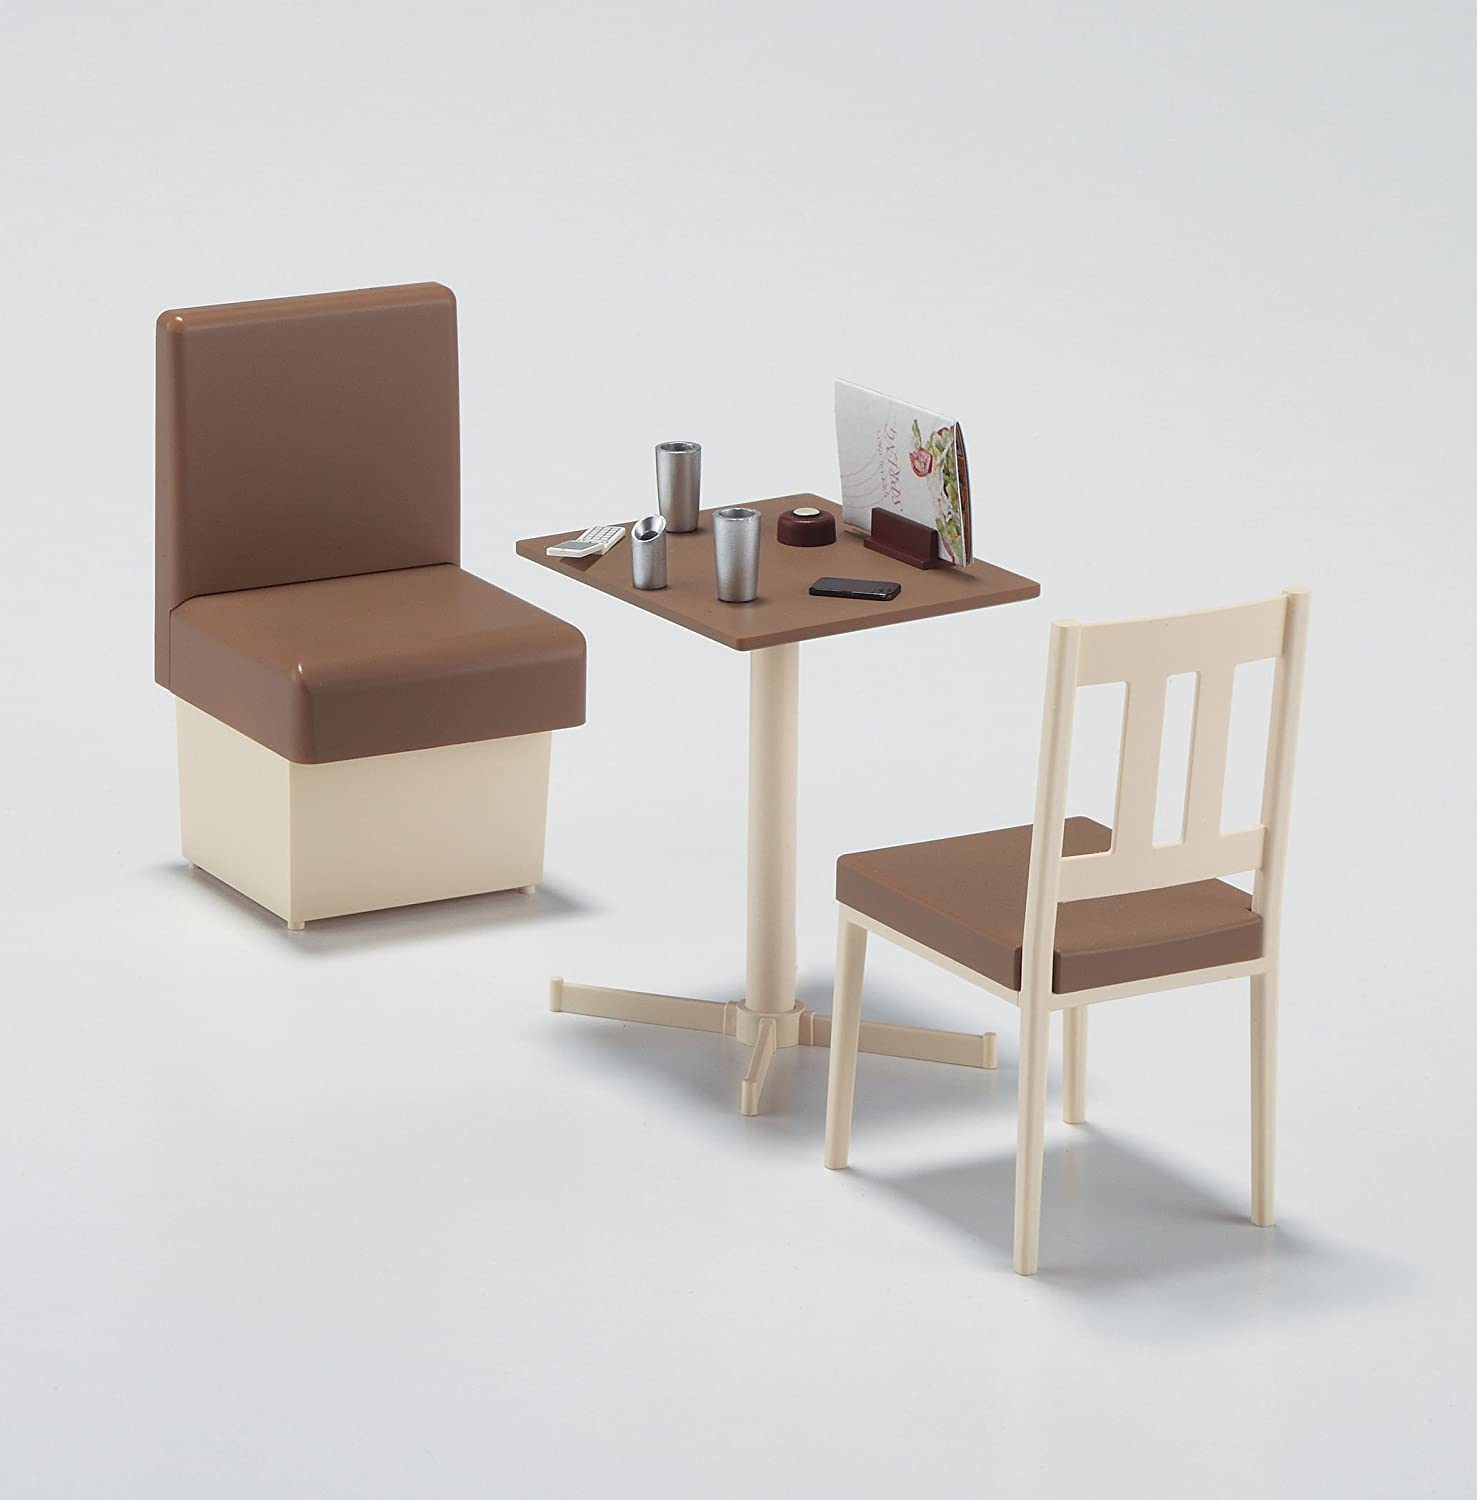 Restaurant table and chairs - Amazon Com Hasegawa 62007 1 12 Family Restaurant Table Chair Toys Games